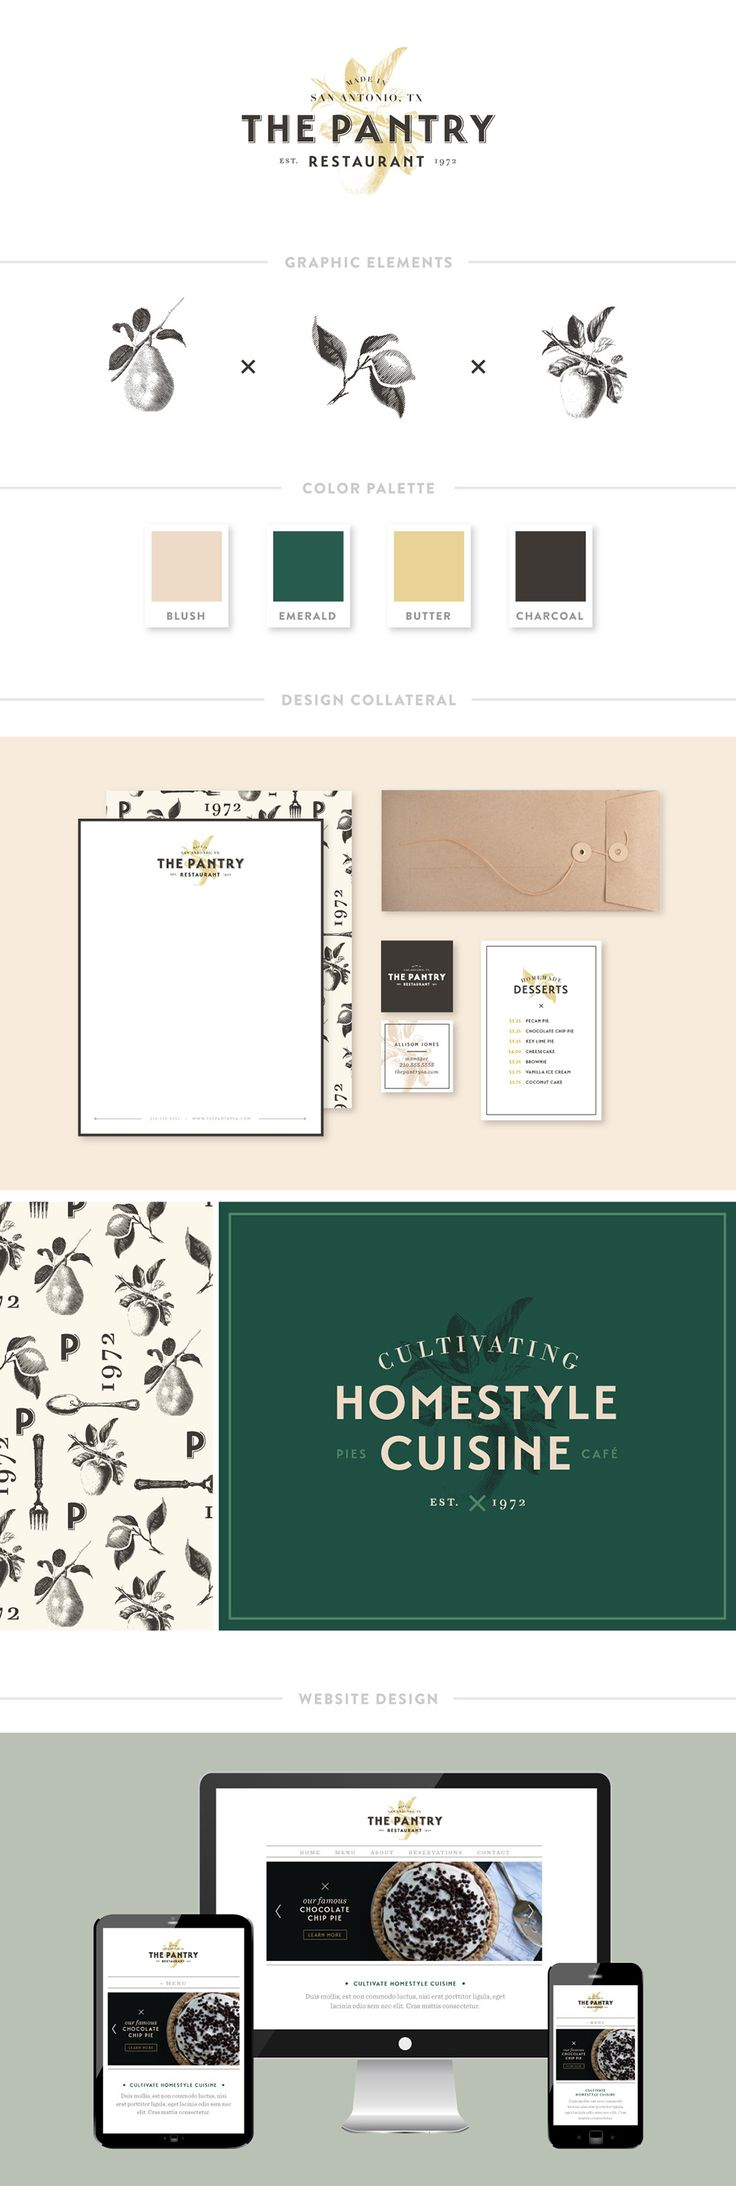 another good example that includes most of what I am wanting from a brand identity... also missing a few elements but pretty good. I also like the color palette.